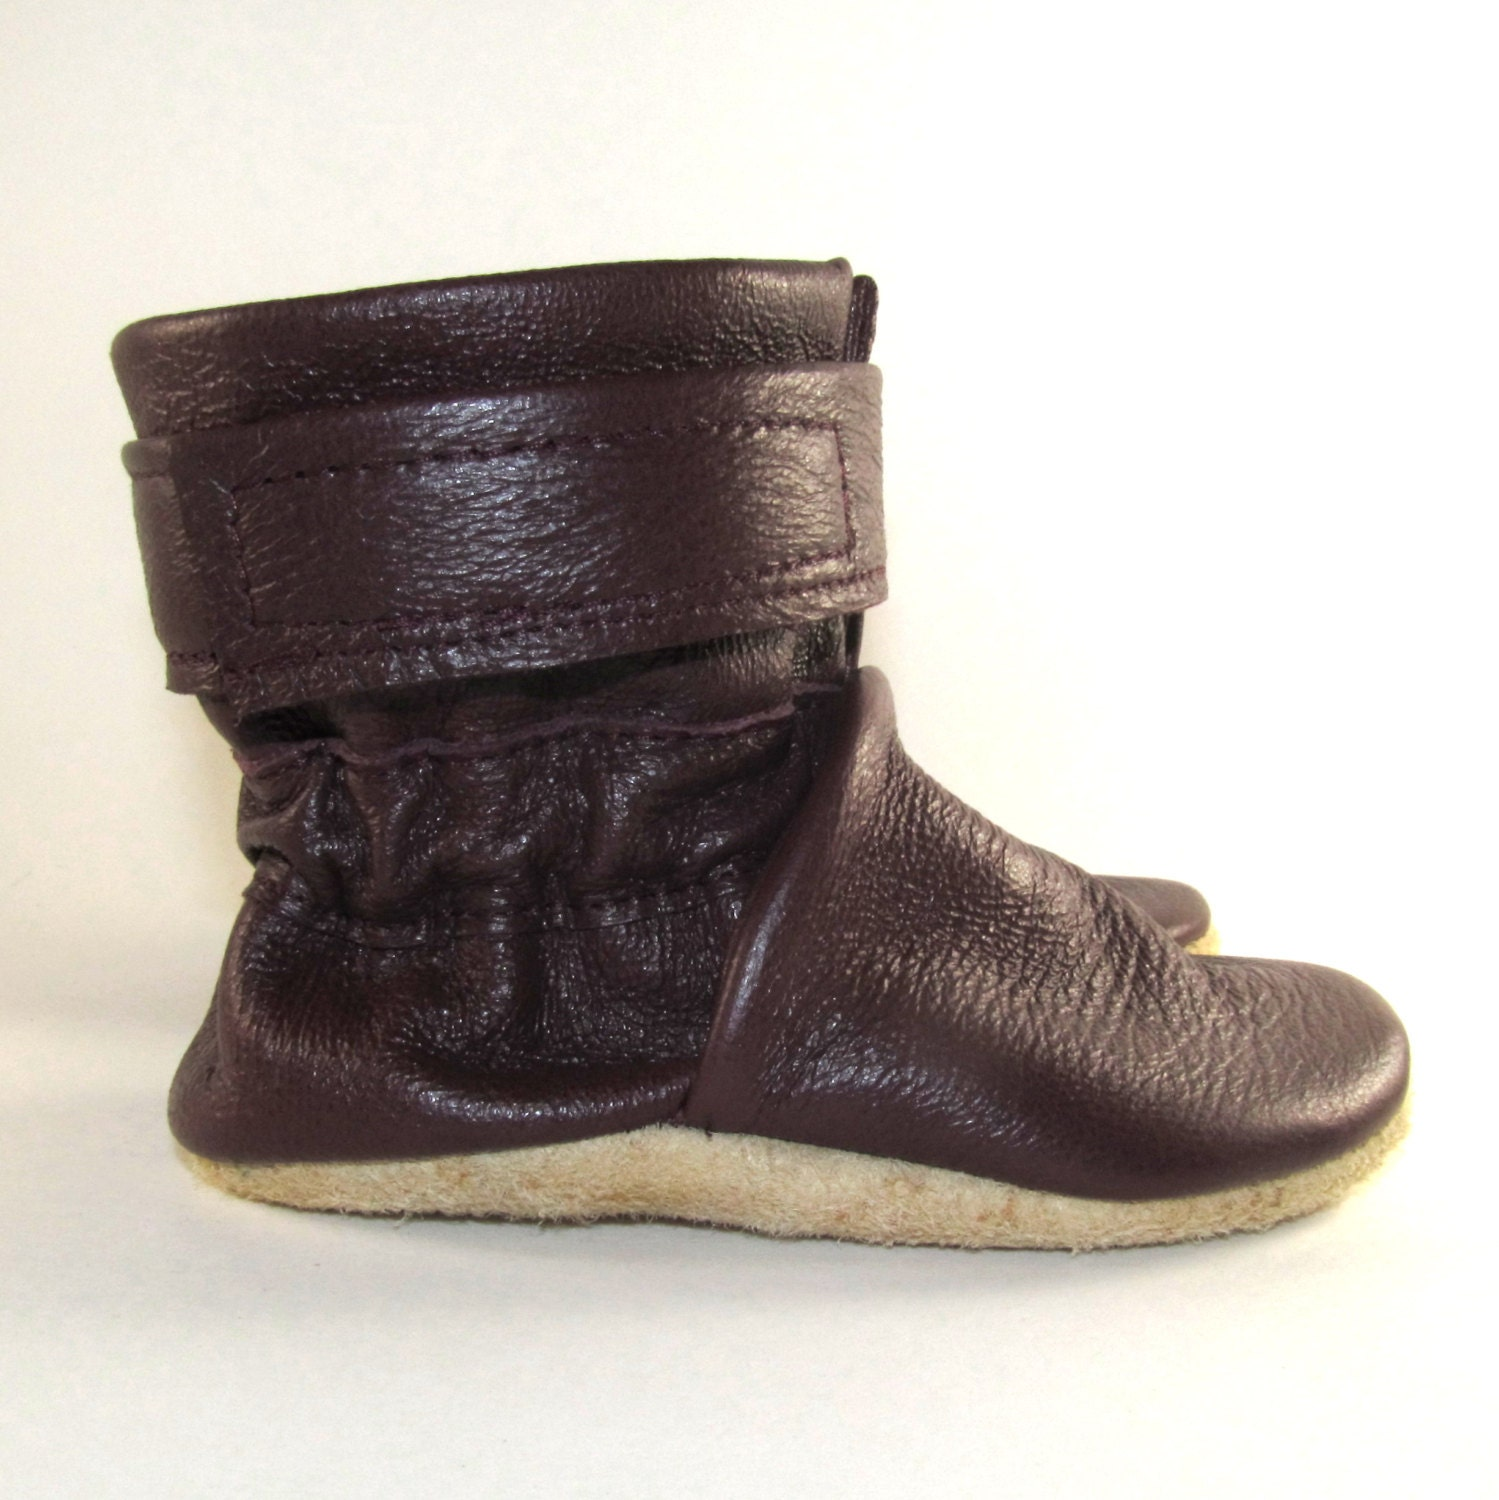 soft sole leather baby boots shoes 0 to 6 month by kaboogie